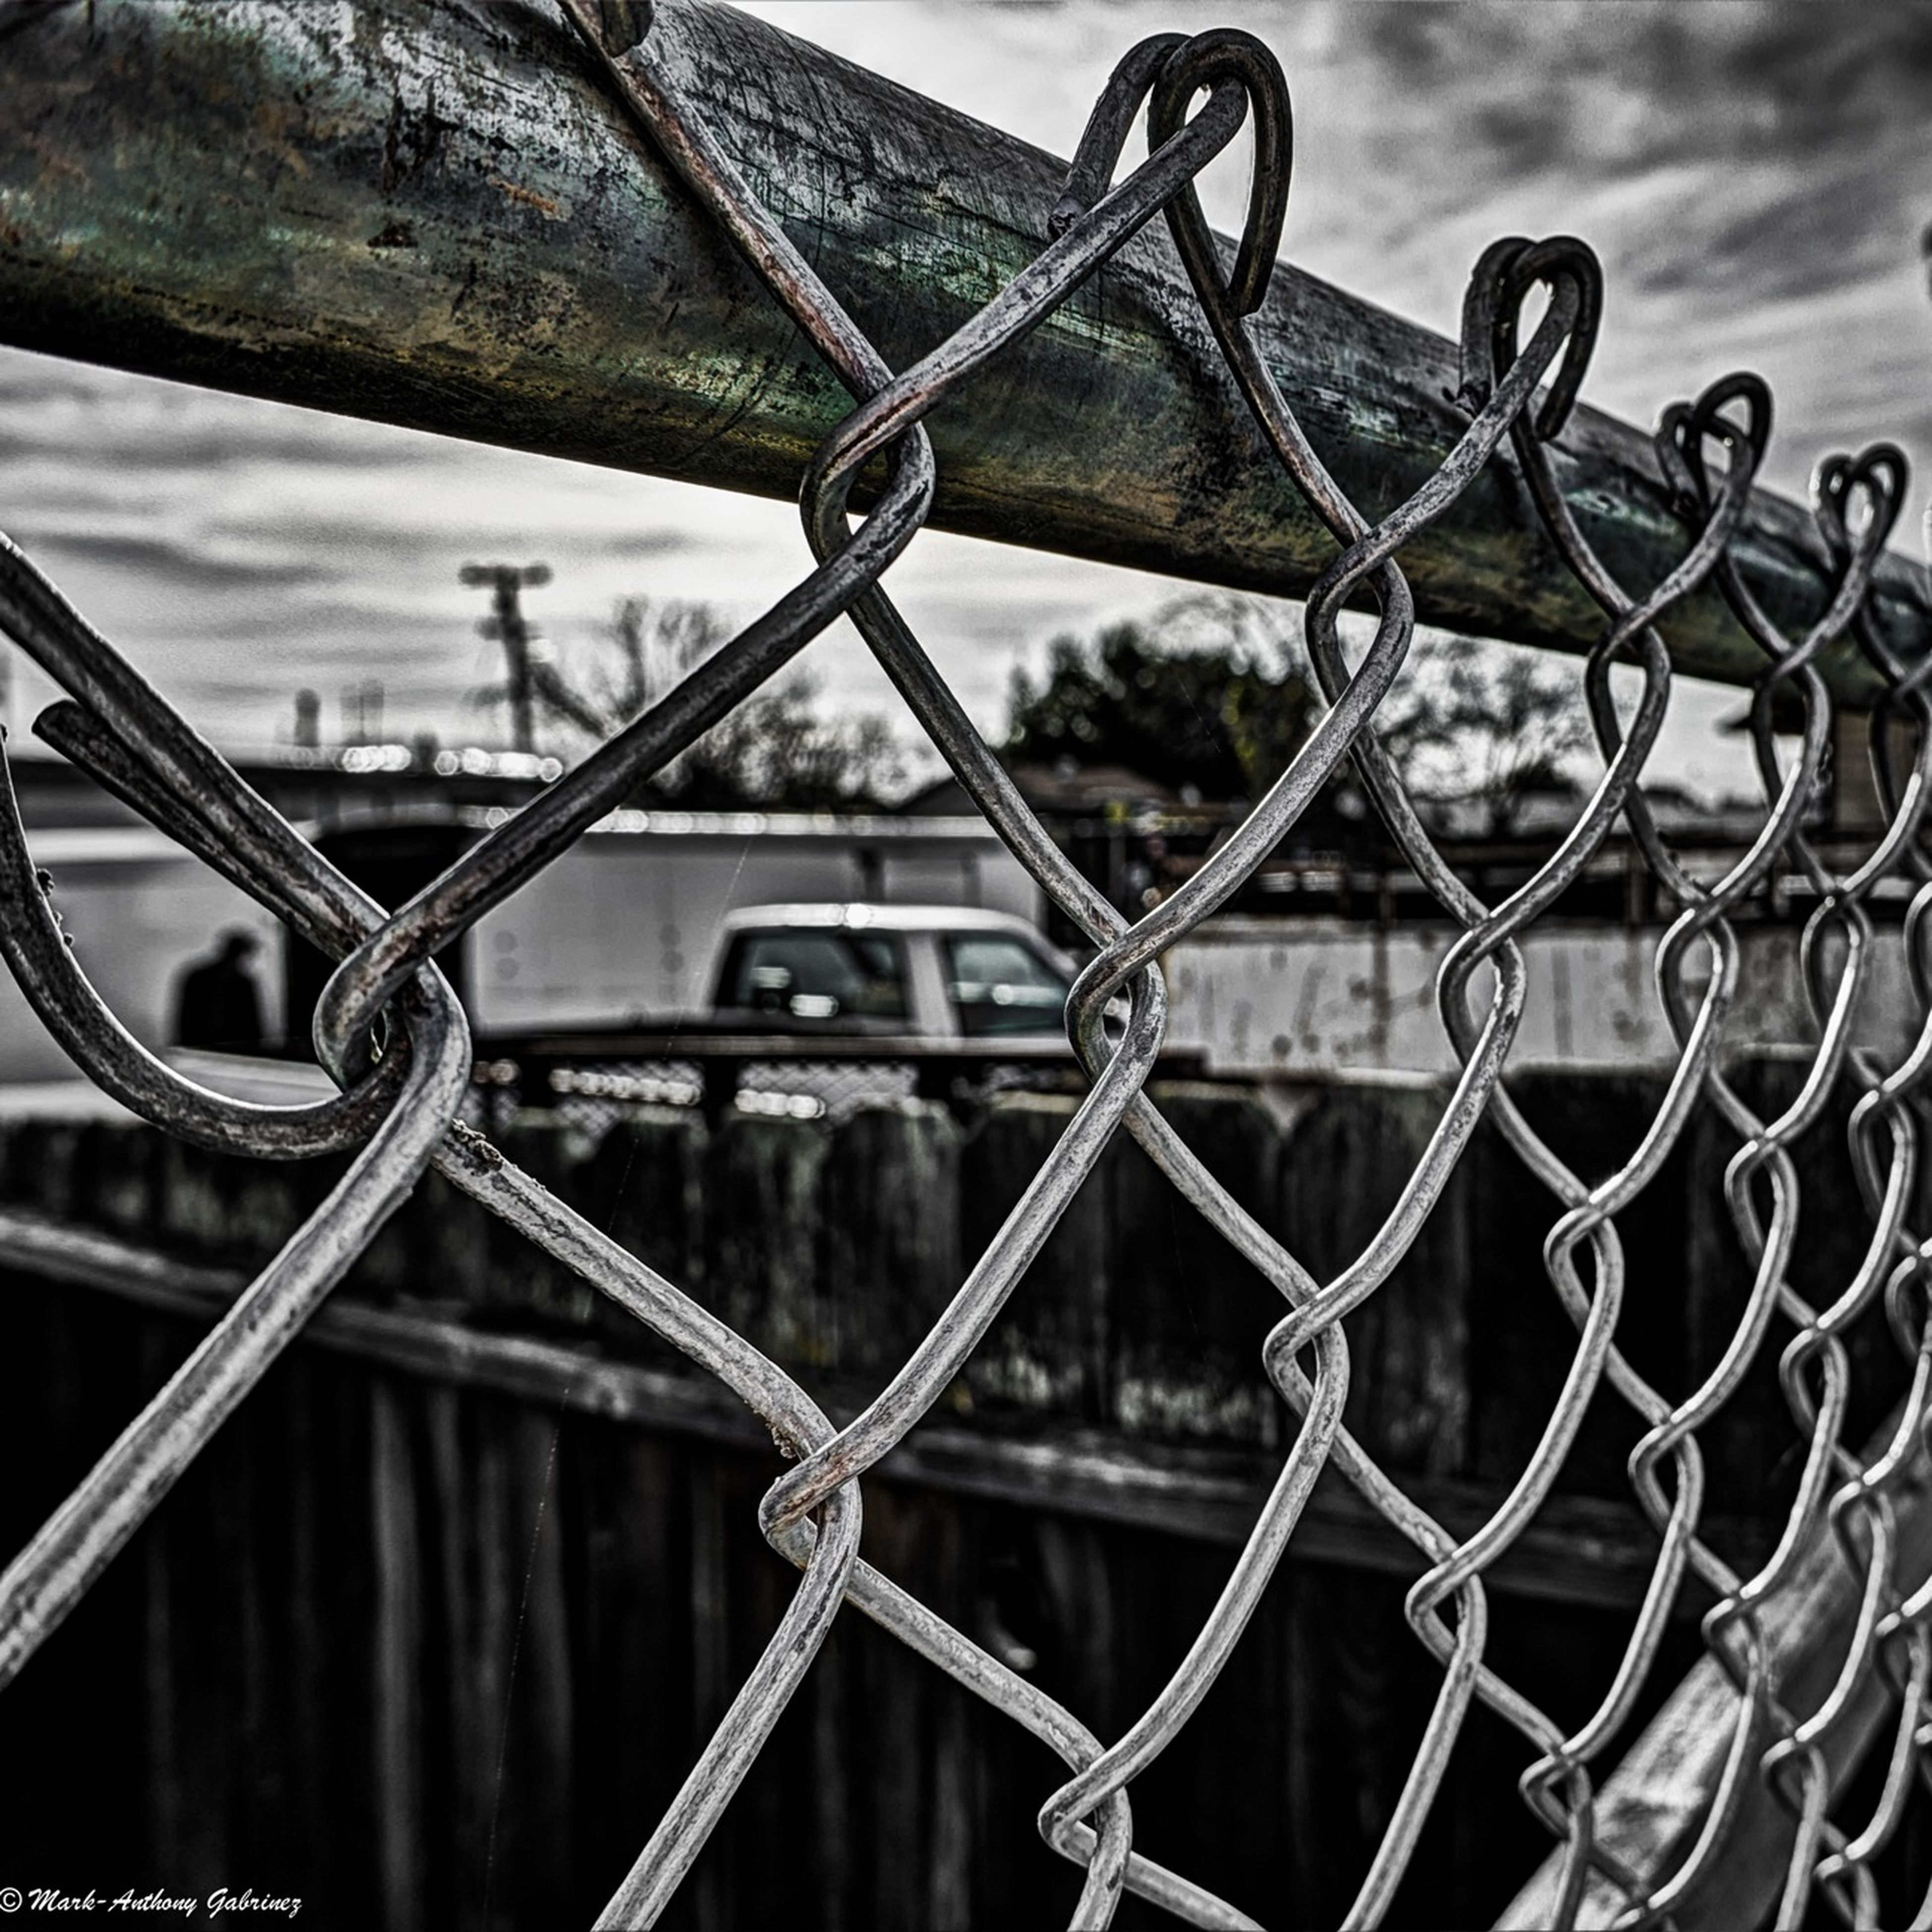 metal, chainlink fence, protection, safety, fence, security, metallic, focus on foreground, close-up, padlock, rusty, railing, sky, full frame, lock, chain, pattern, gate, day, barbed wire